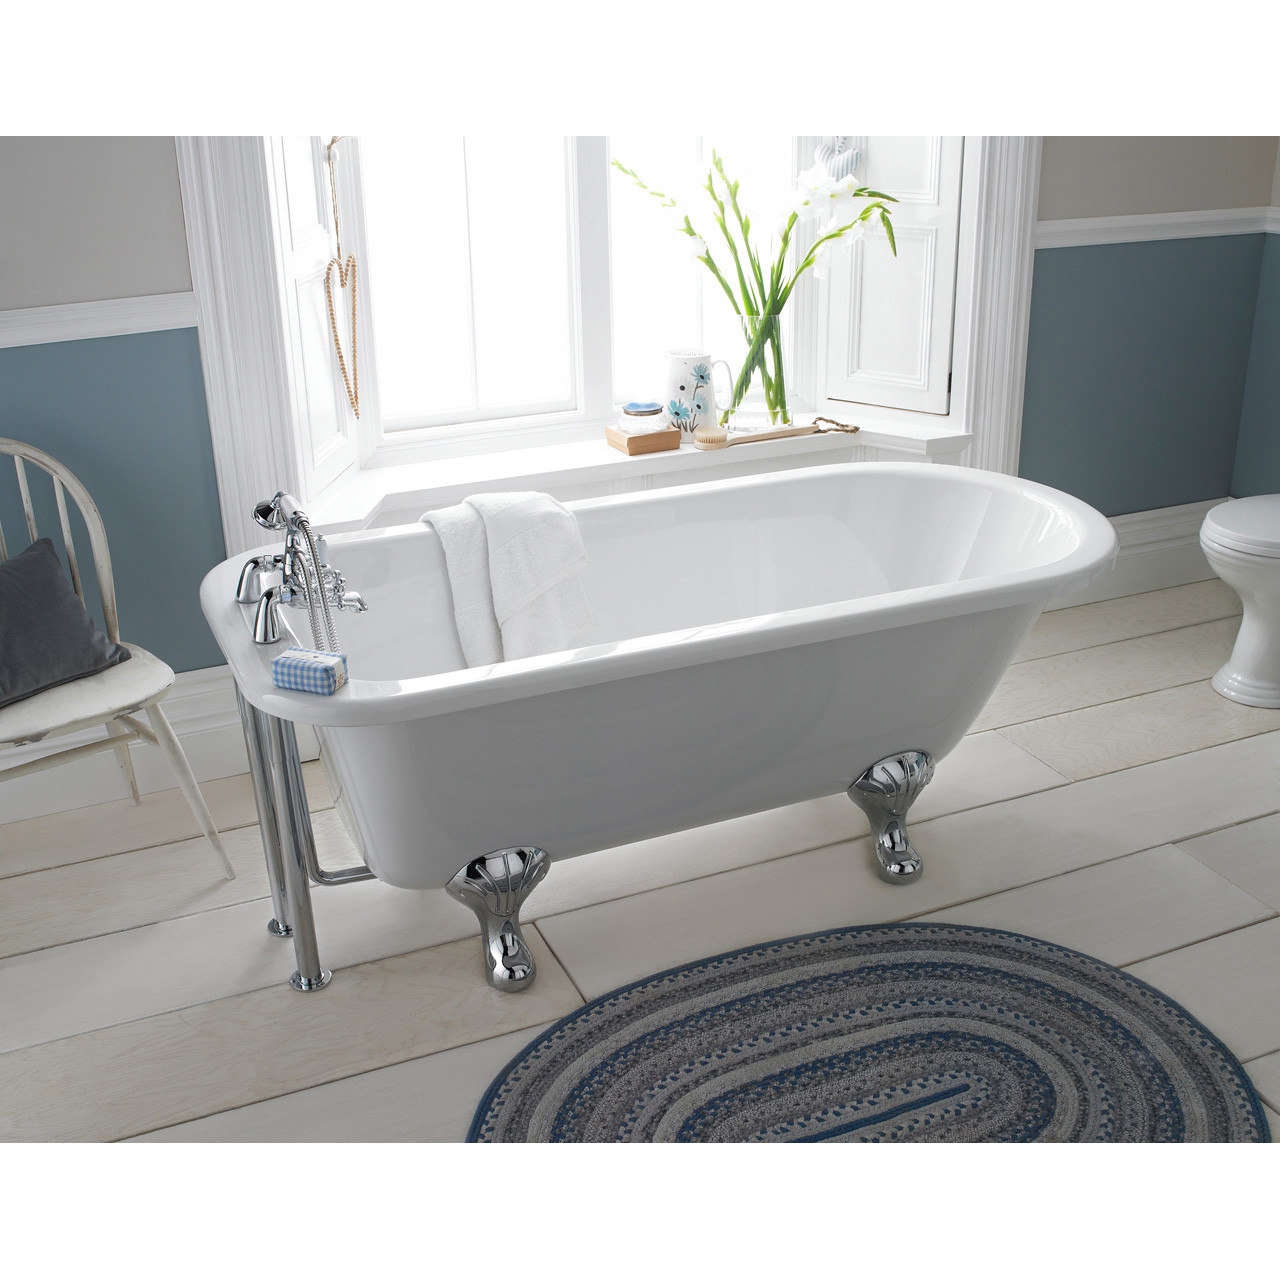 Nuie Barnsbury 1700mm Single Ended Freestanding Bath with Corbel Legs - RL1707T